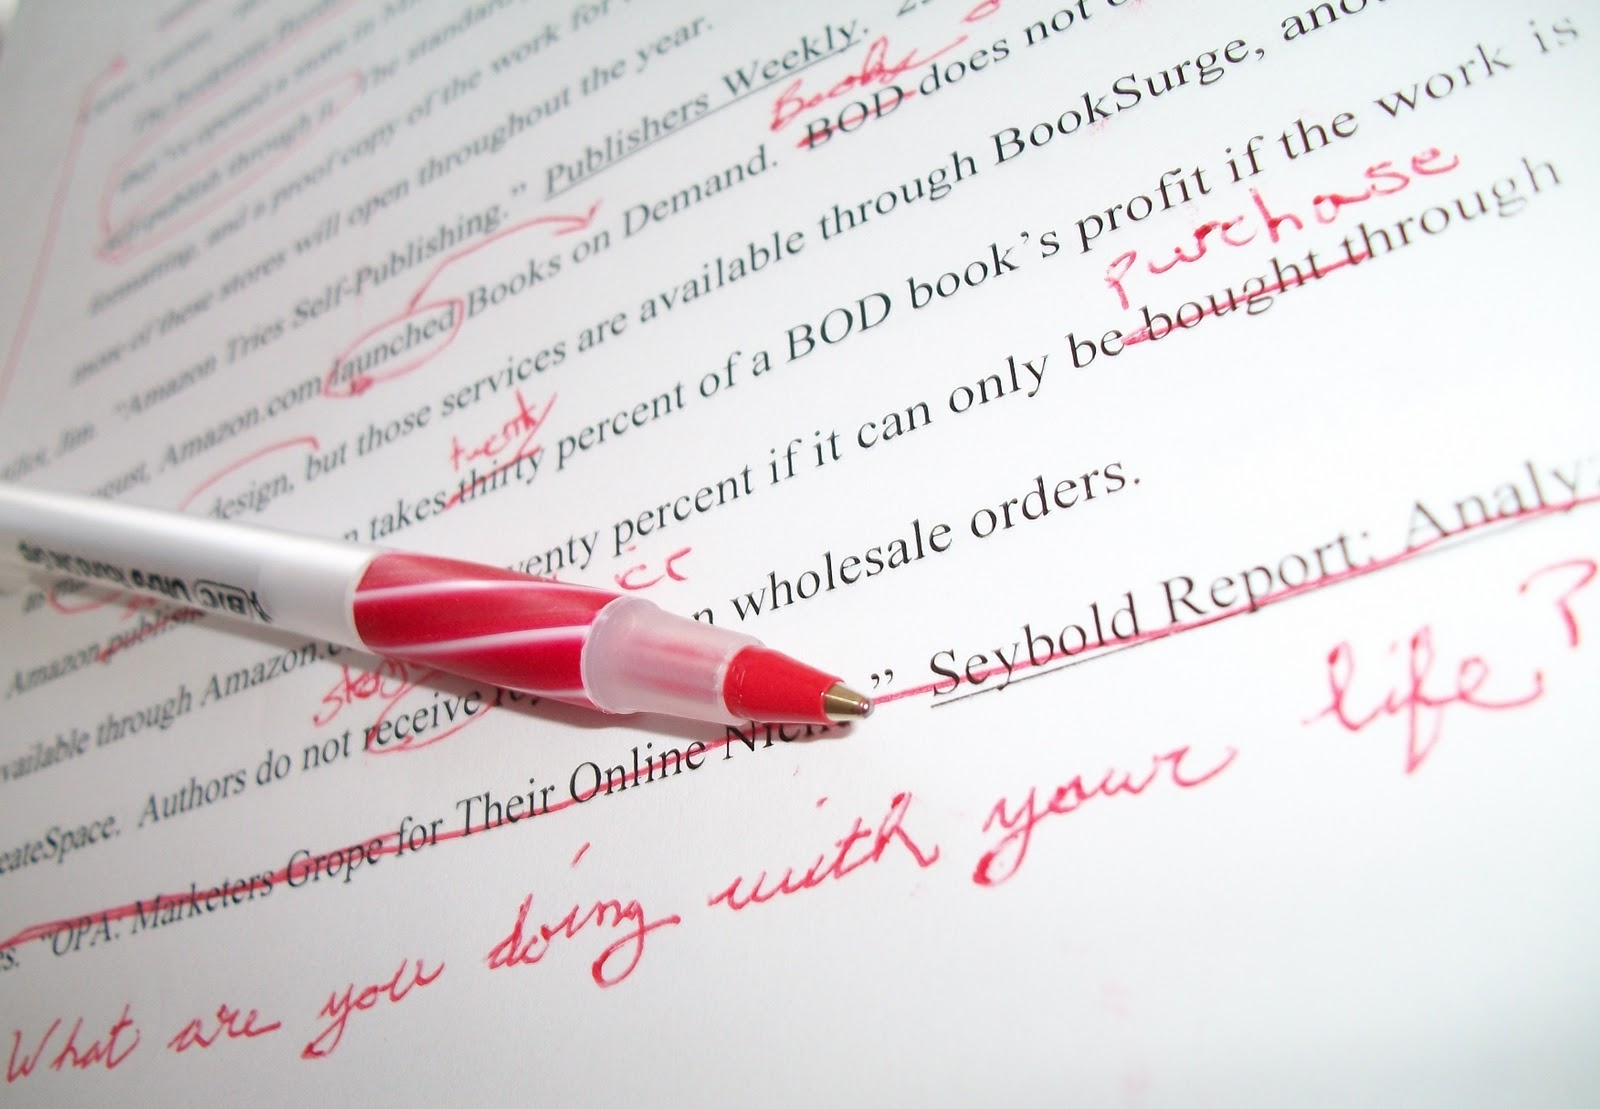 Proofread and edit a document